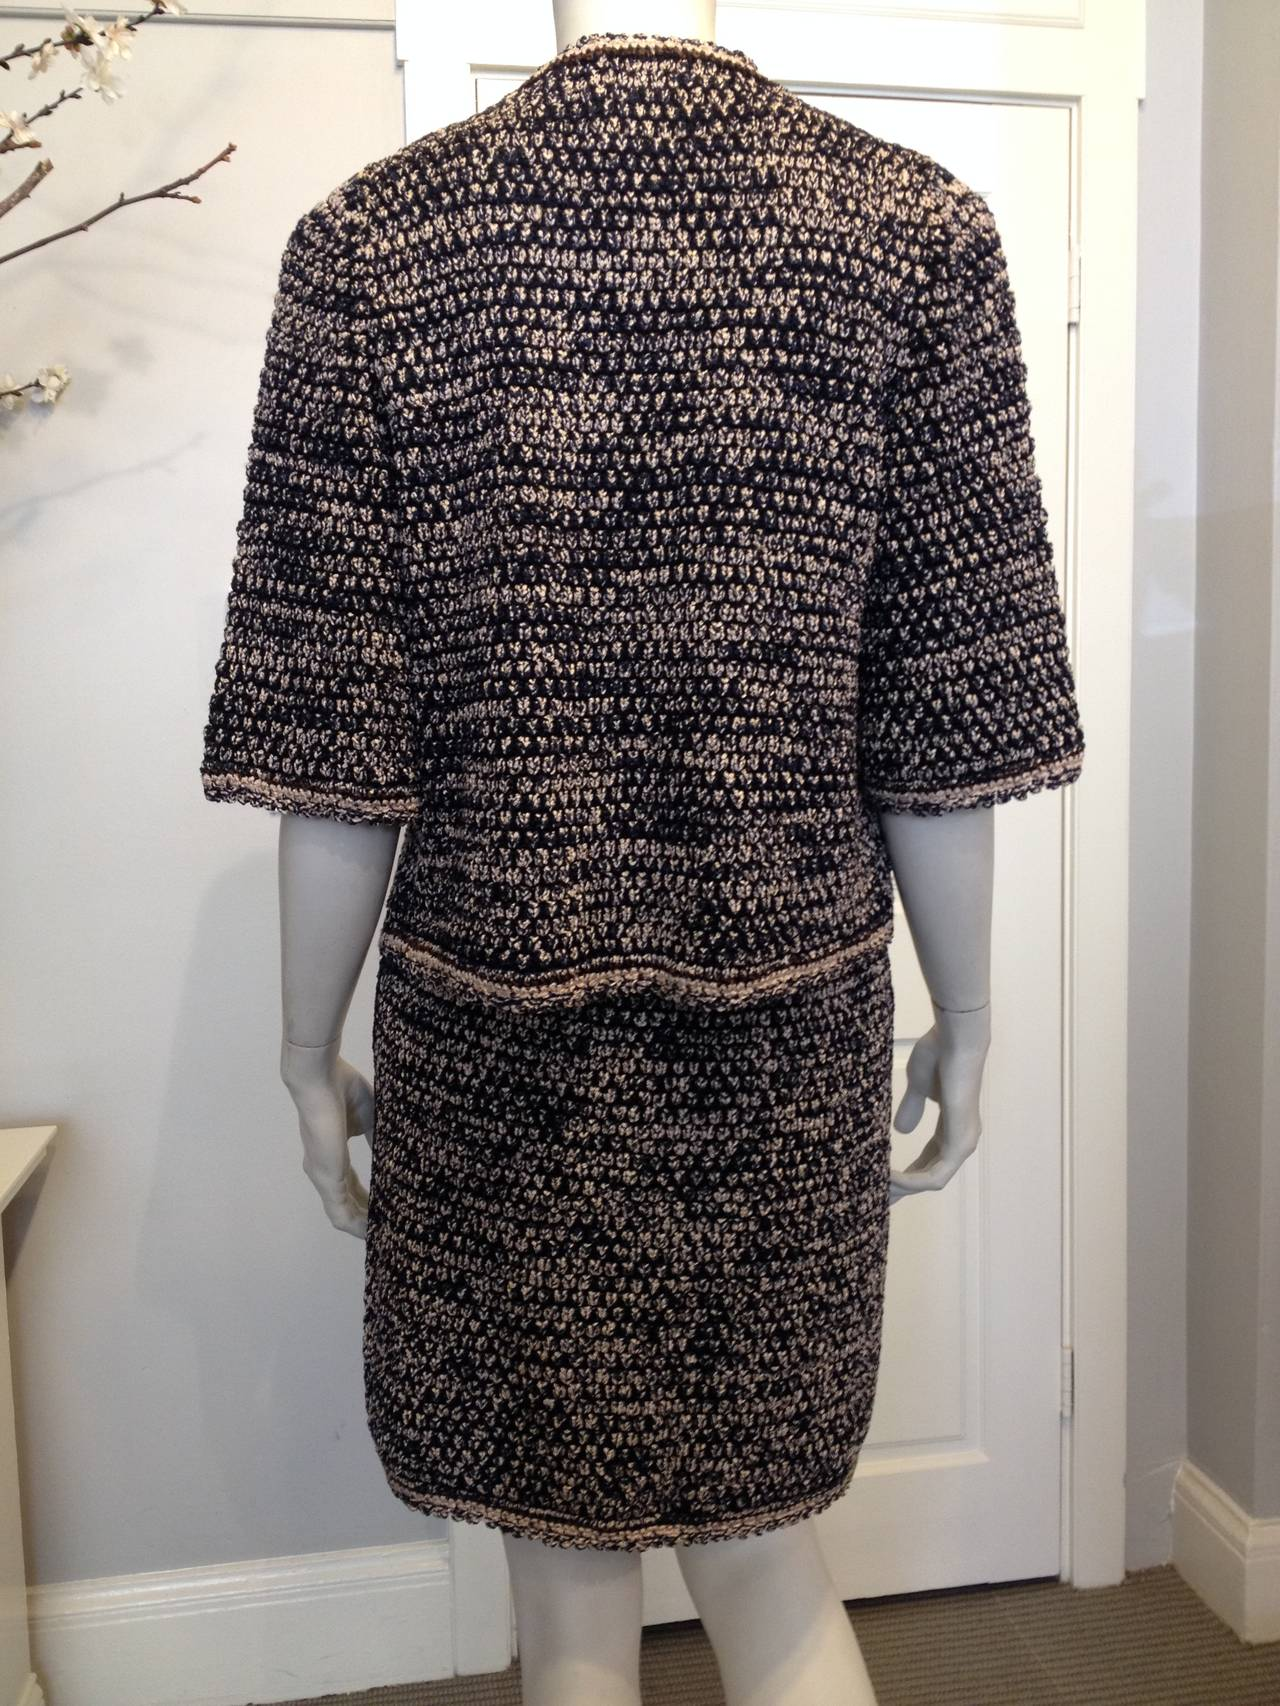 Chanel Navy and Pink Knit Skirt Suit In Excellent Condition For Sale In San Francisco, CA